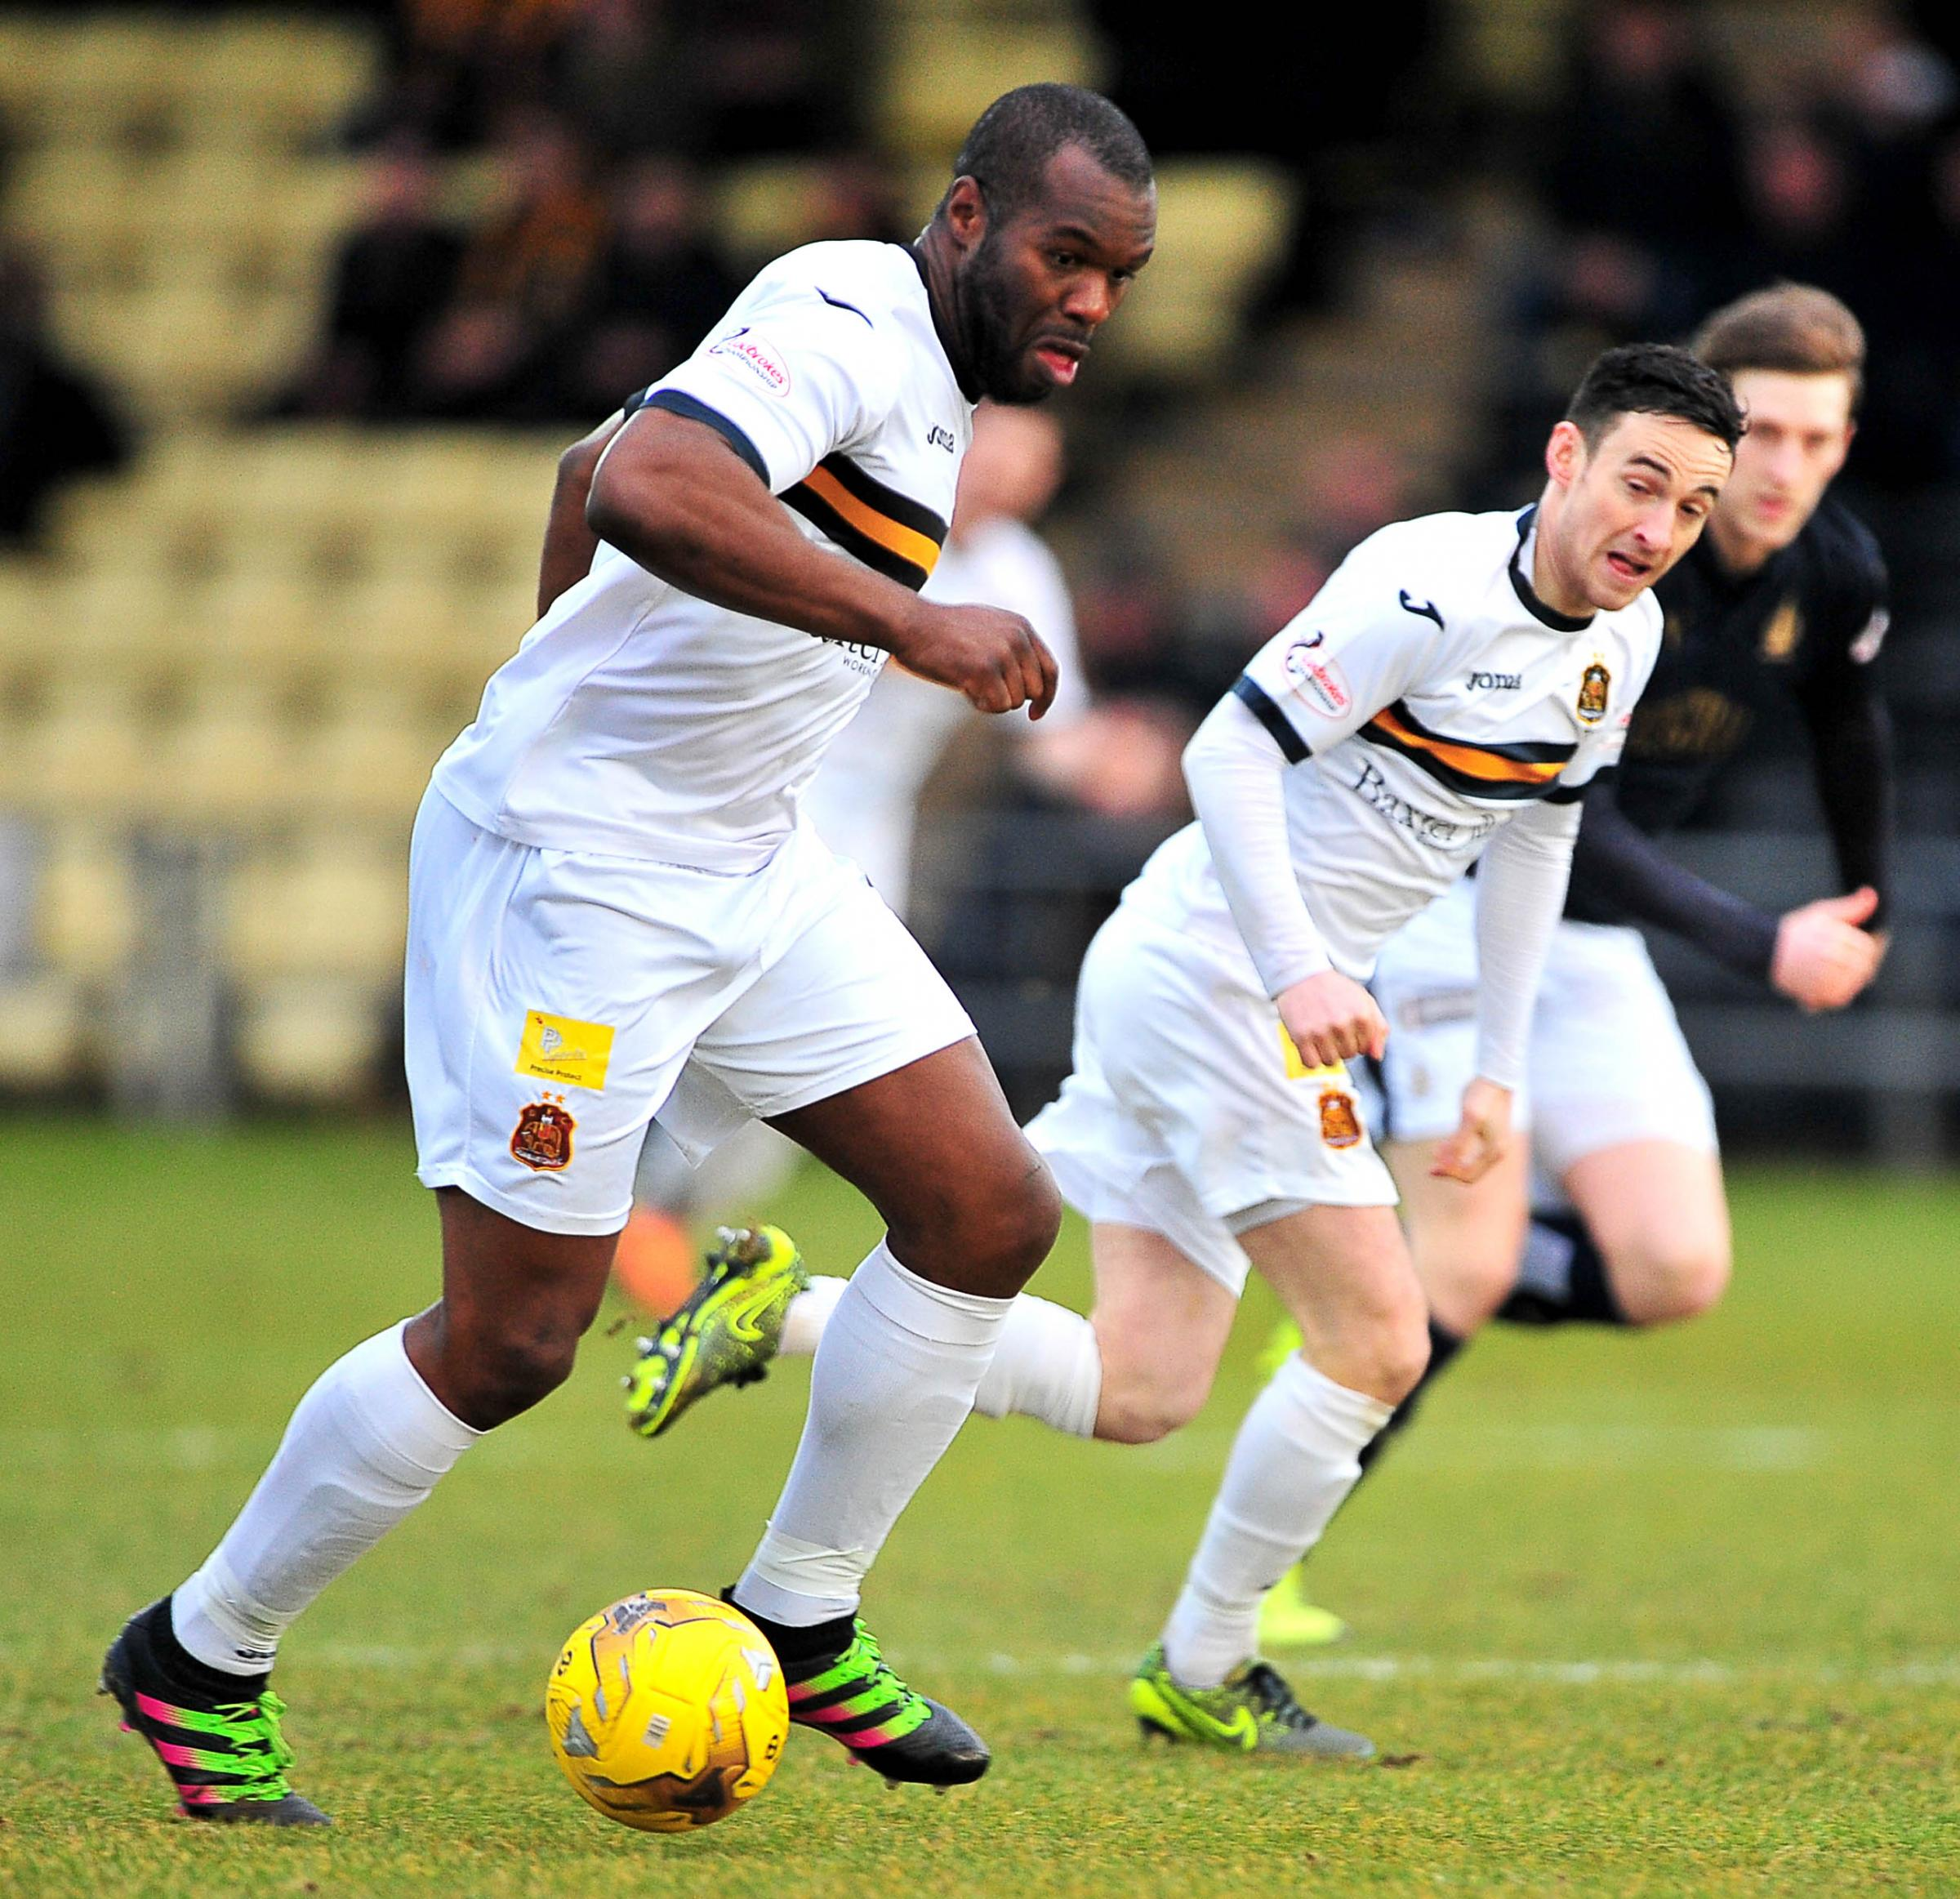 Aitken is planning for next season without Christian Nade (pictured) and Steven Saunders